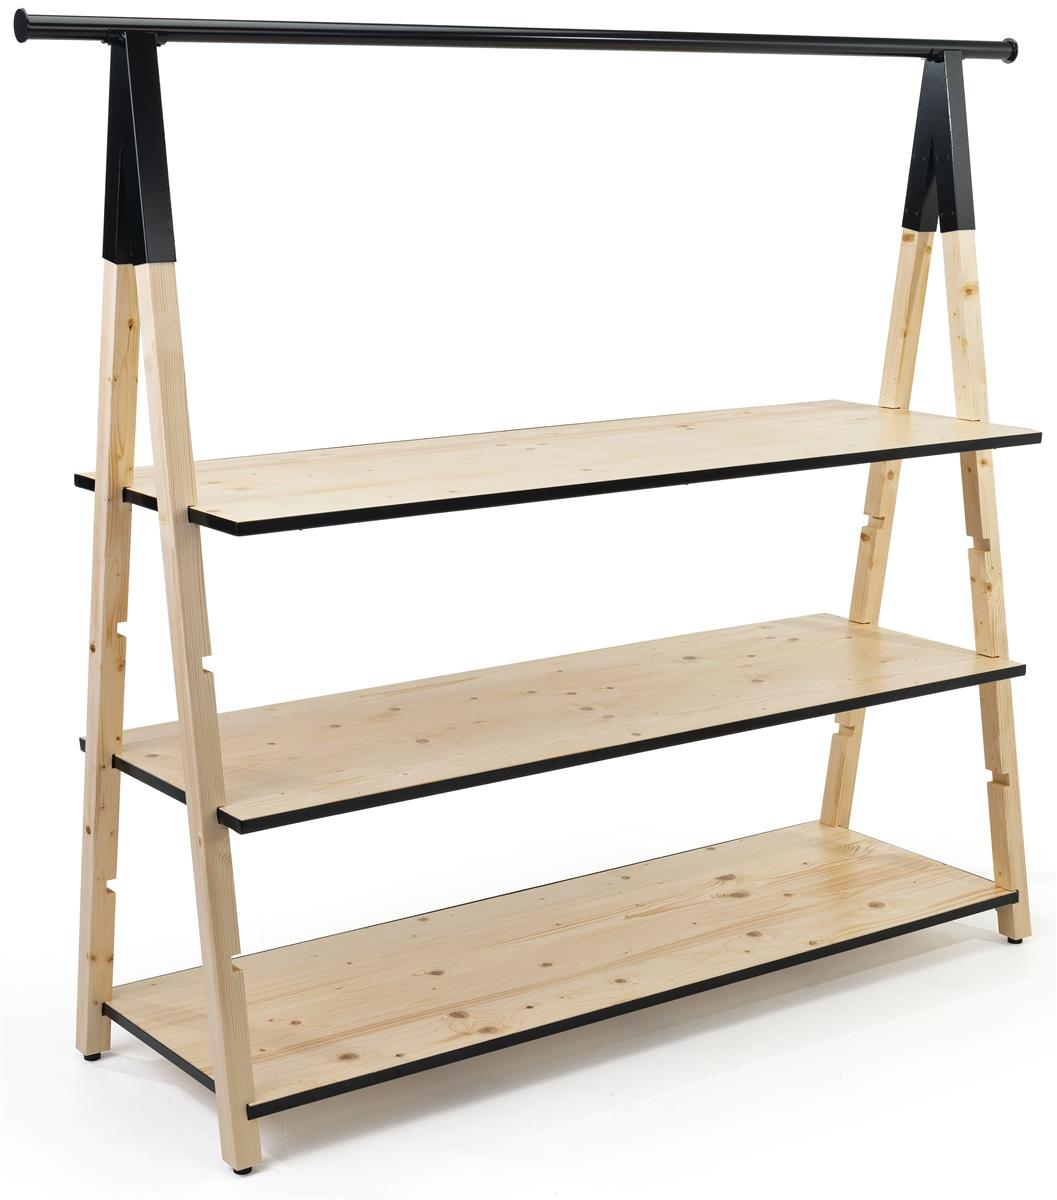 72 x 51 wooden a frame clothing rack adjustable shelves metal piping natural